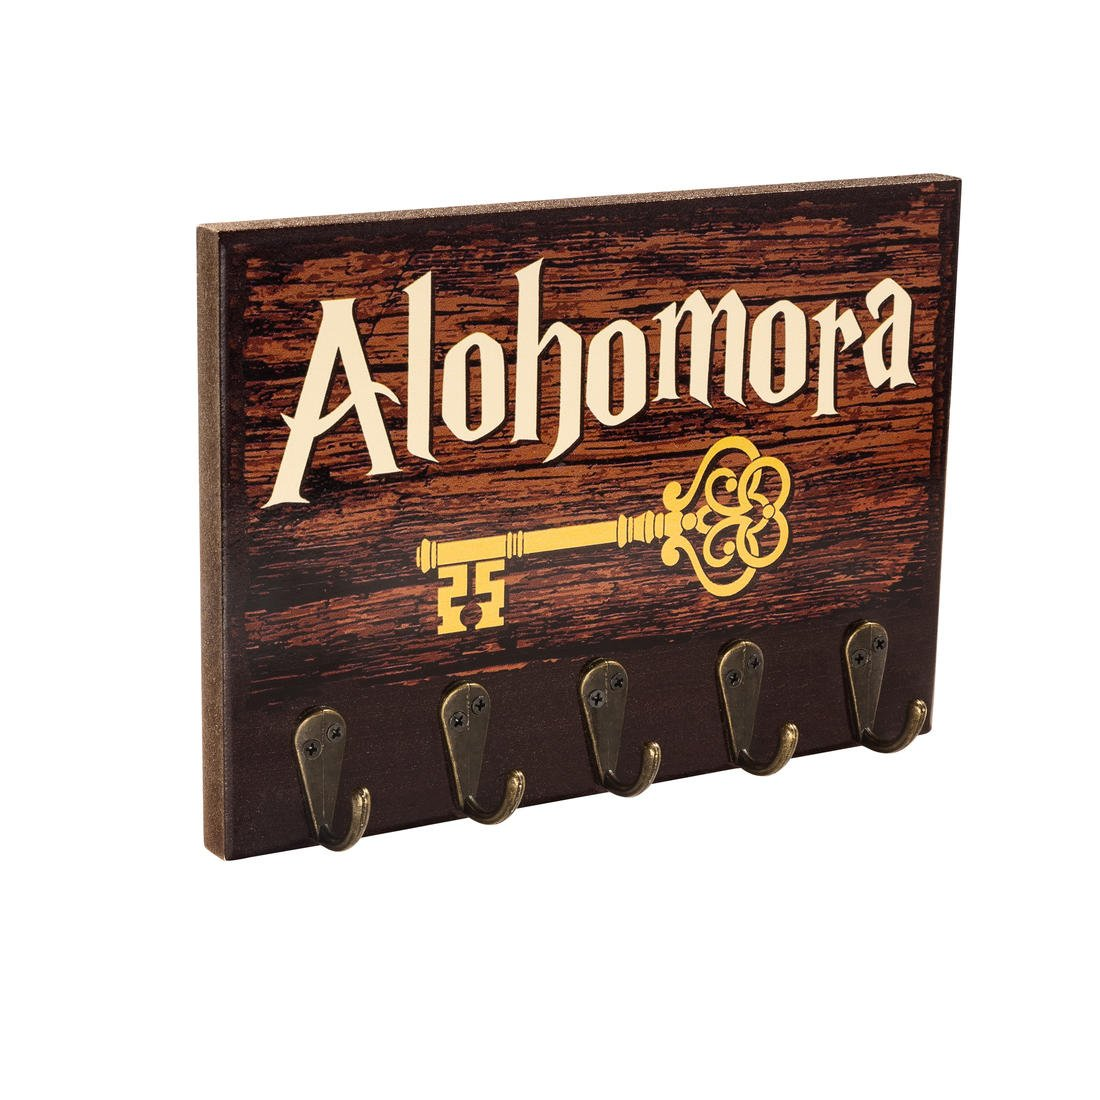 getDigital 13854 Alohomora Key Rack   Magical Home and Office Decor Key Holder with 5 Metal Hooks   Can Also be Used as a Hanger for Clothes, Bags or Dog leashes   8.27 x 5.9 x 1.57 inch